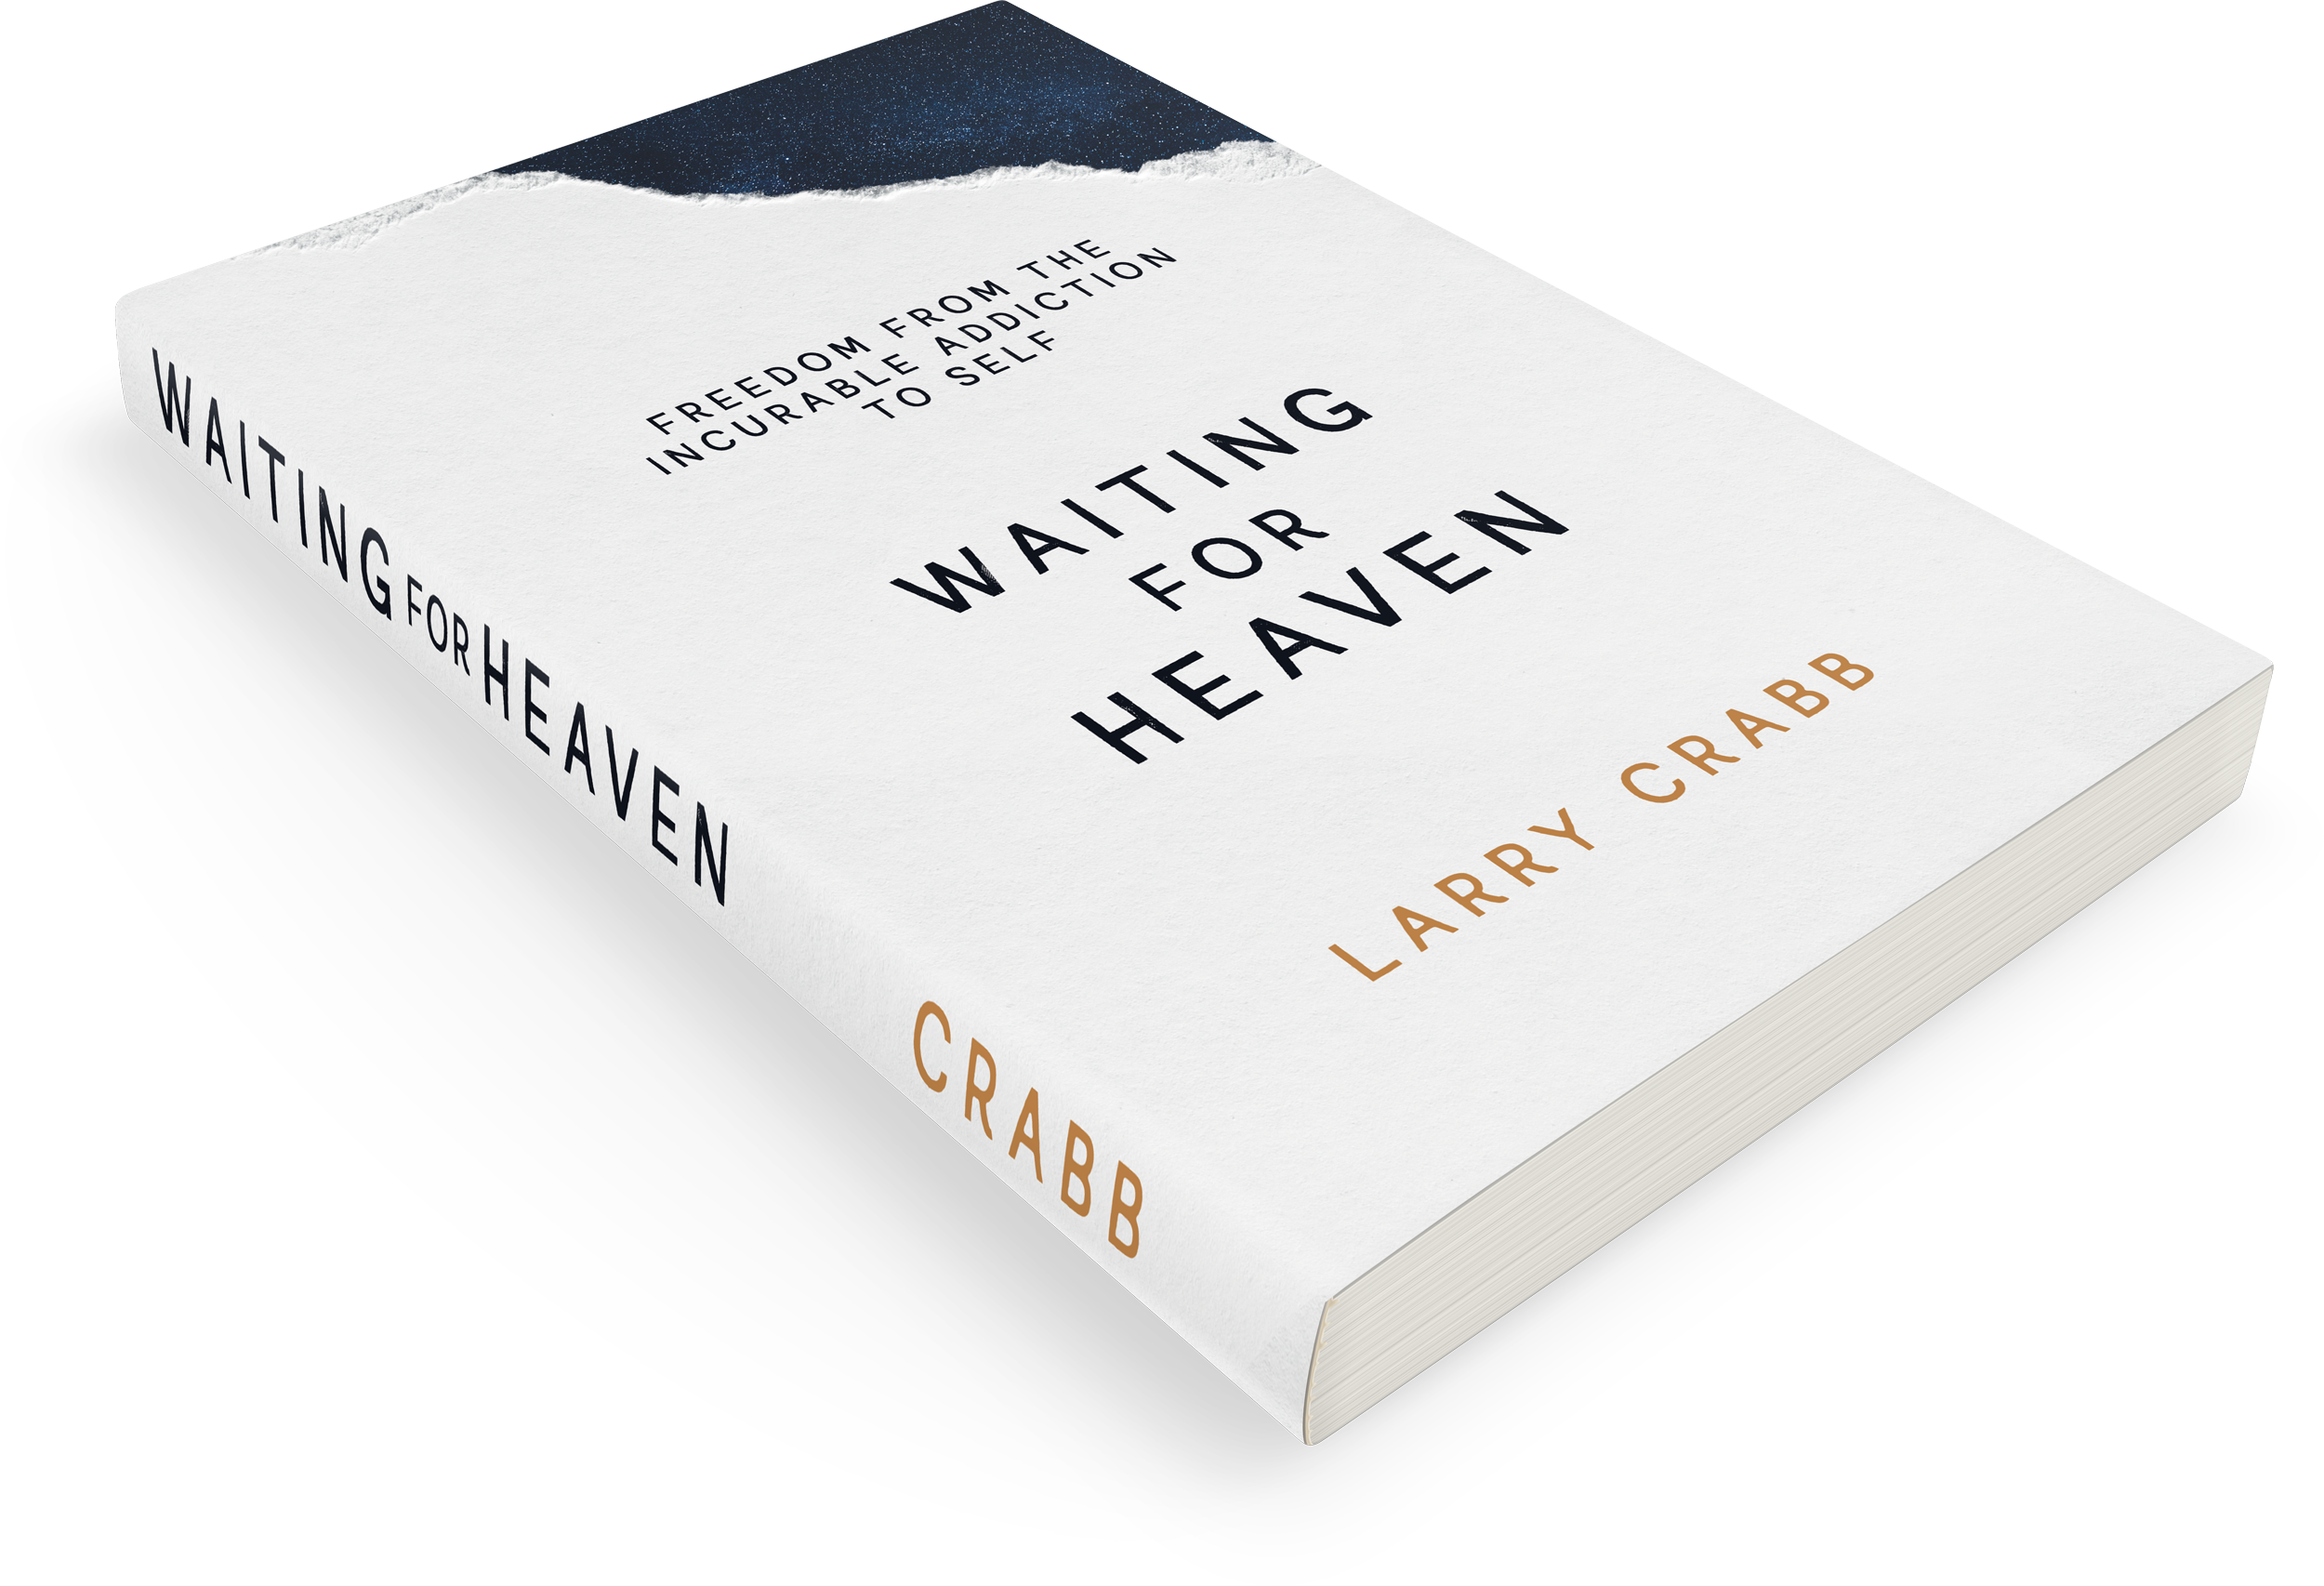 Waiting for Heaven book cover angled on a table.